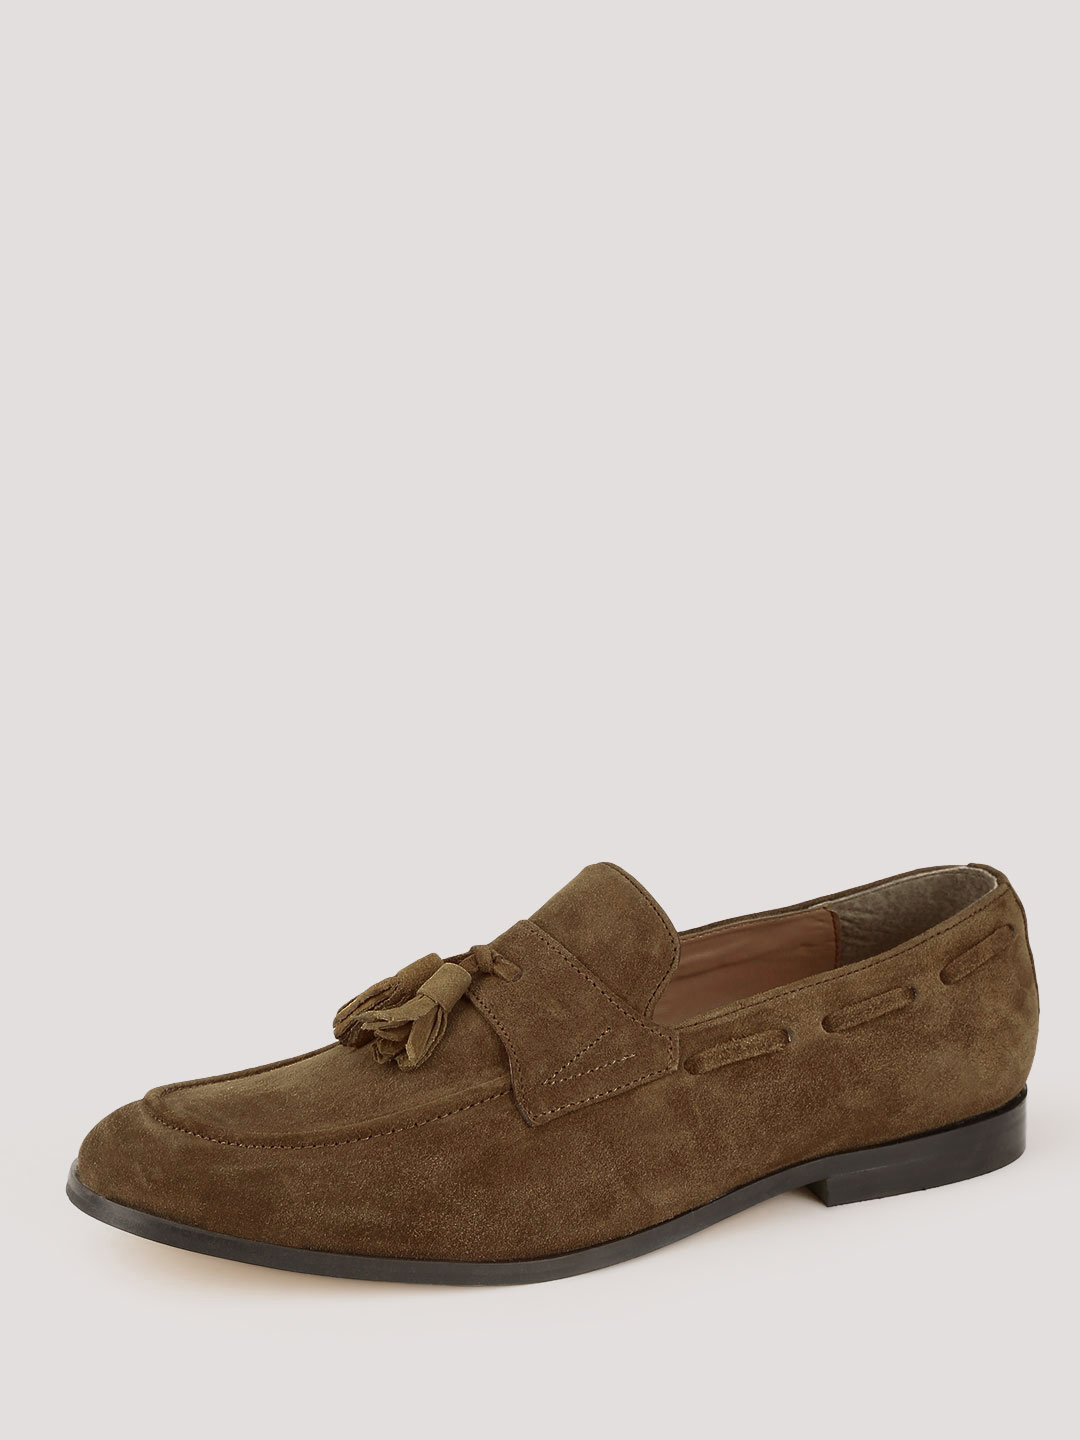 Griffin Tan Leather Tassled Moccasins 1